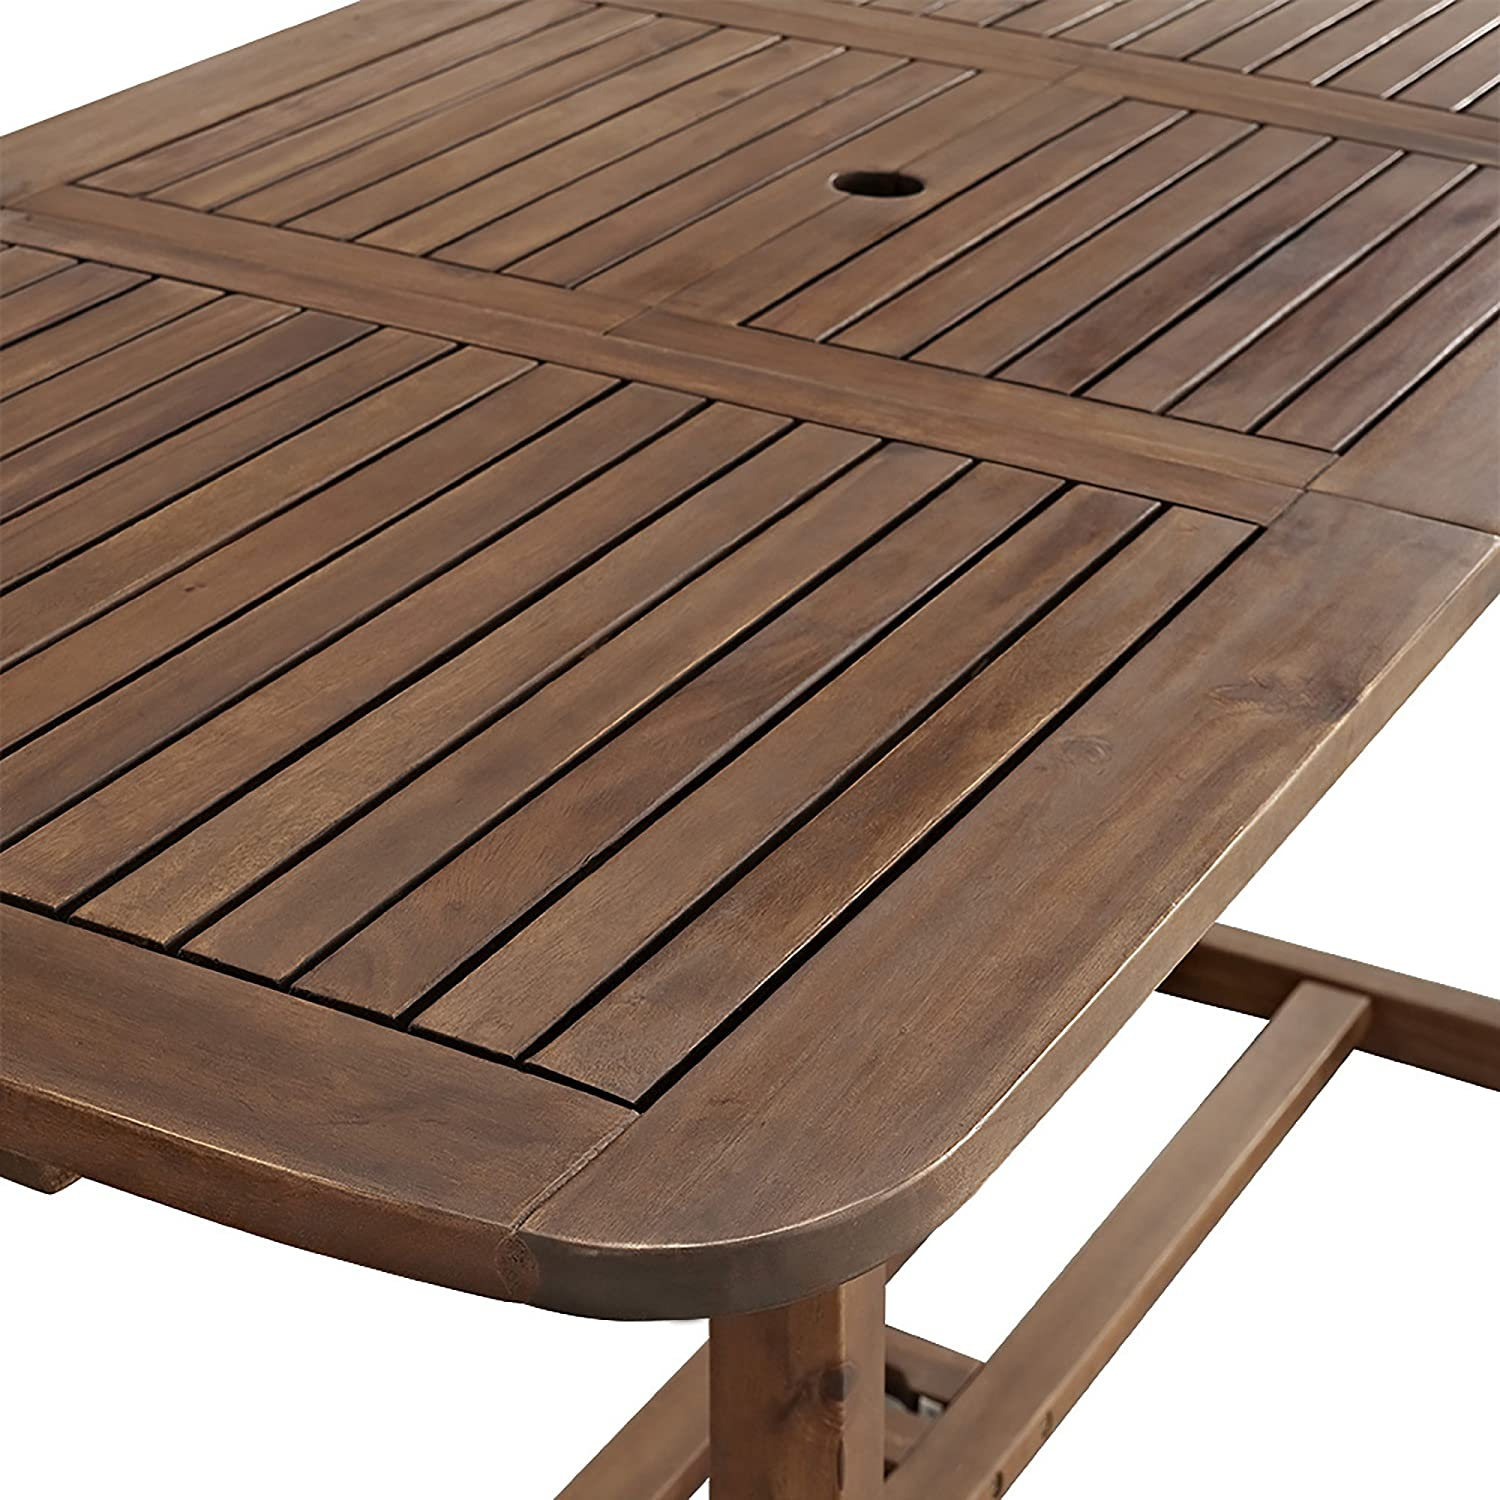 Amazon WE Furniture Solid Acacia Wood 7 Piece Patio Dining